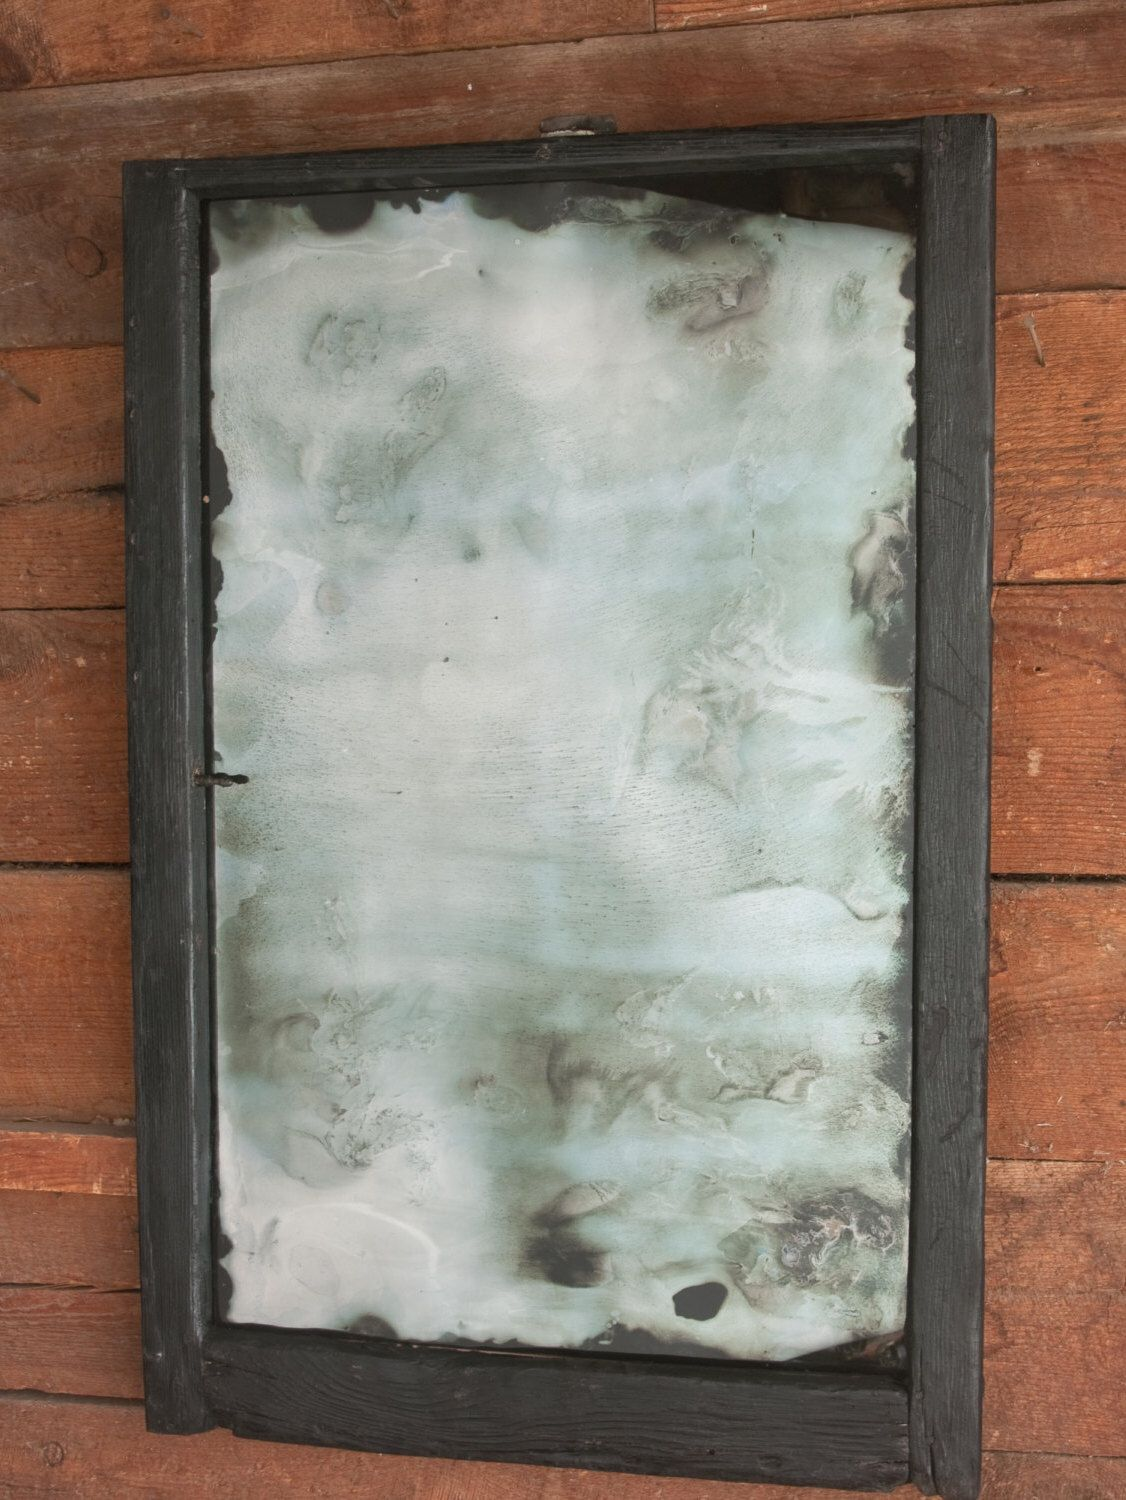 Antiqued Silver Mirror with Shou Sugi Ban Wood Frame, Antiqued Silver Wall Mirror by AlchemyInGlass on Etsy https://www.etsy.com/listing/294341927/antiqued-silver-mirror-with-shou-sugi